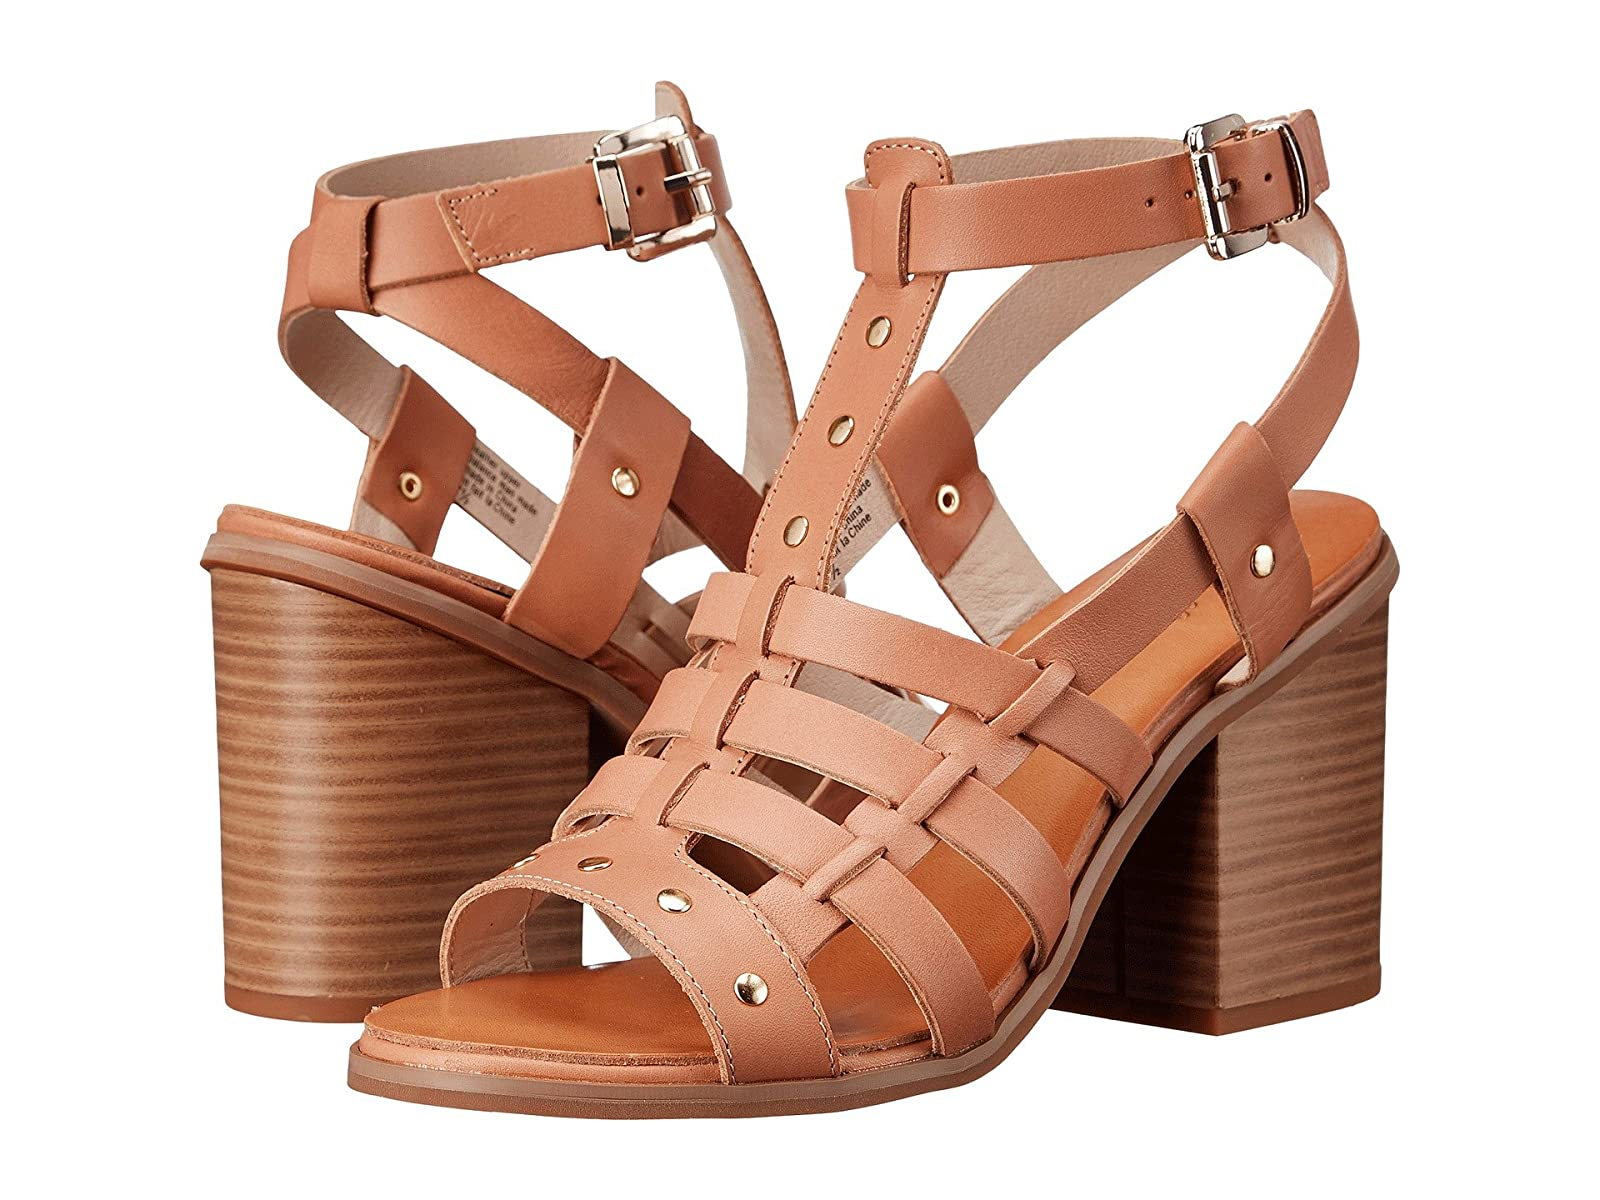 Seychelles Scout It OutCheap and distinctive eye-catching shoes